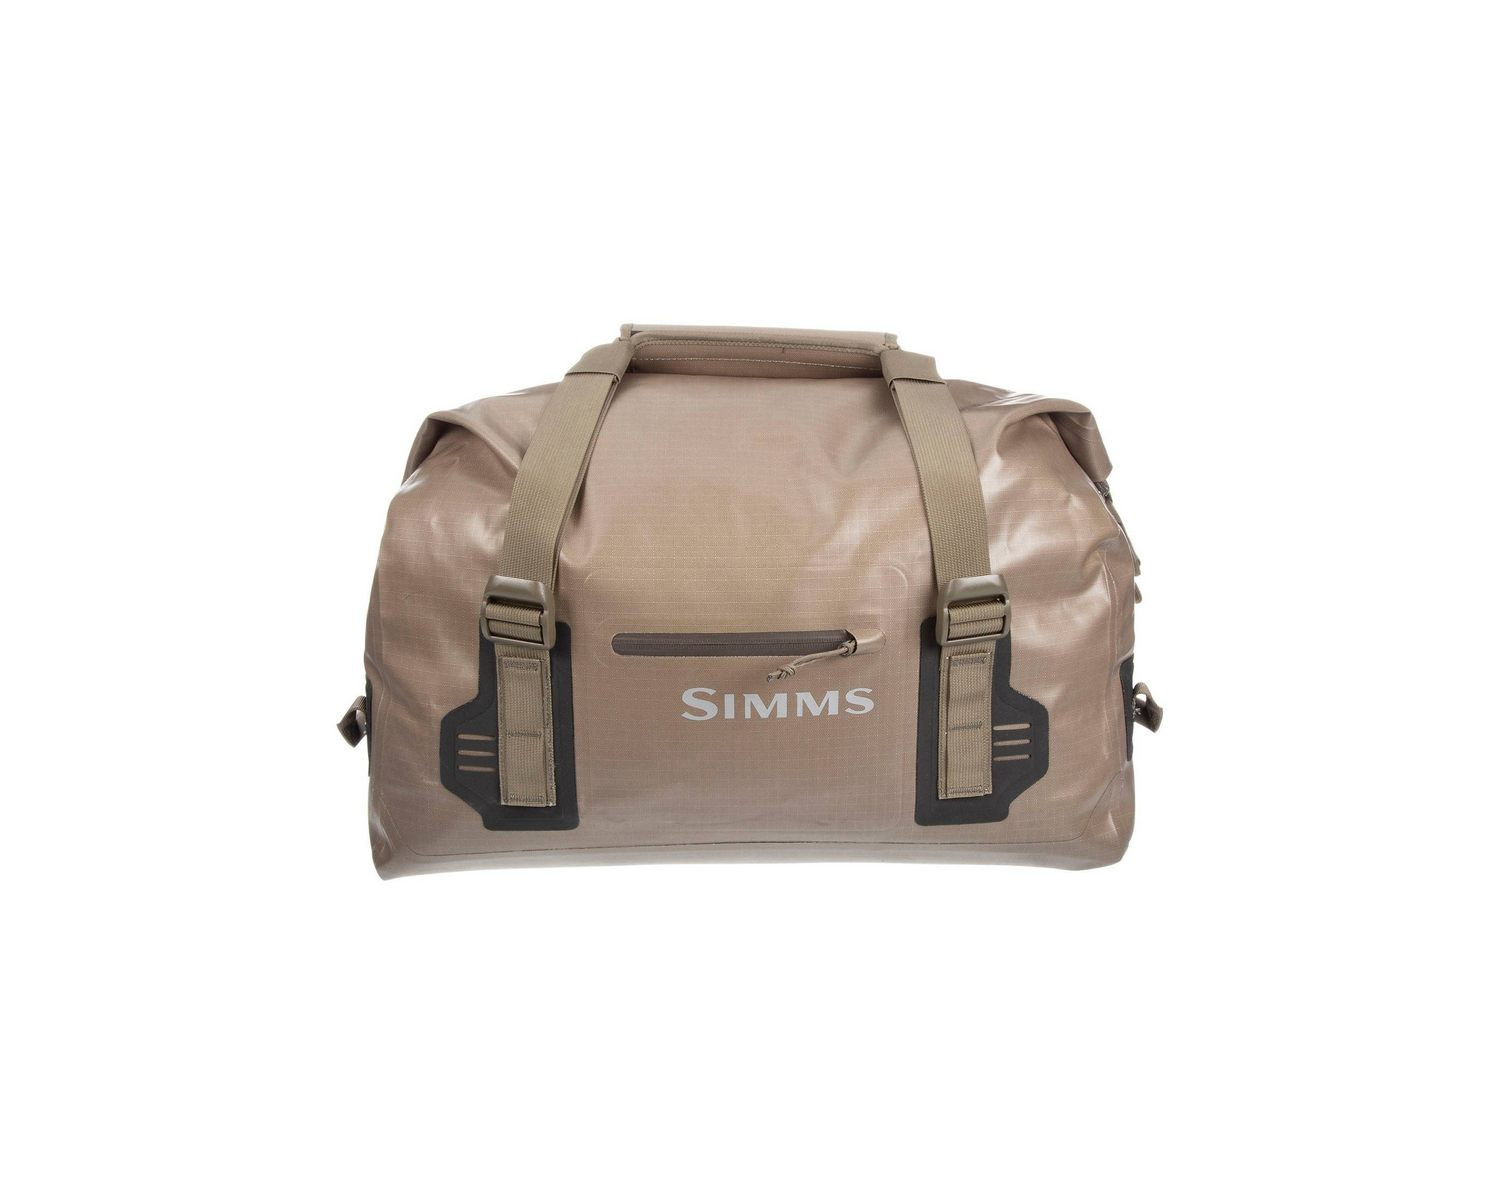 Simms Dry Creek Waterproof Duffel S - 60L, Tan